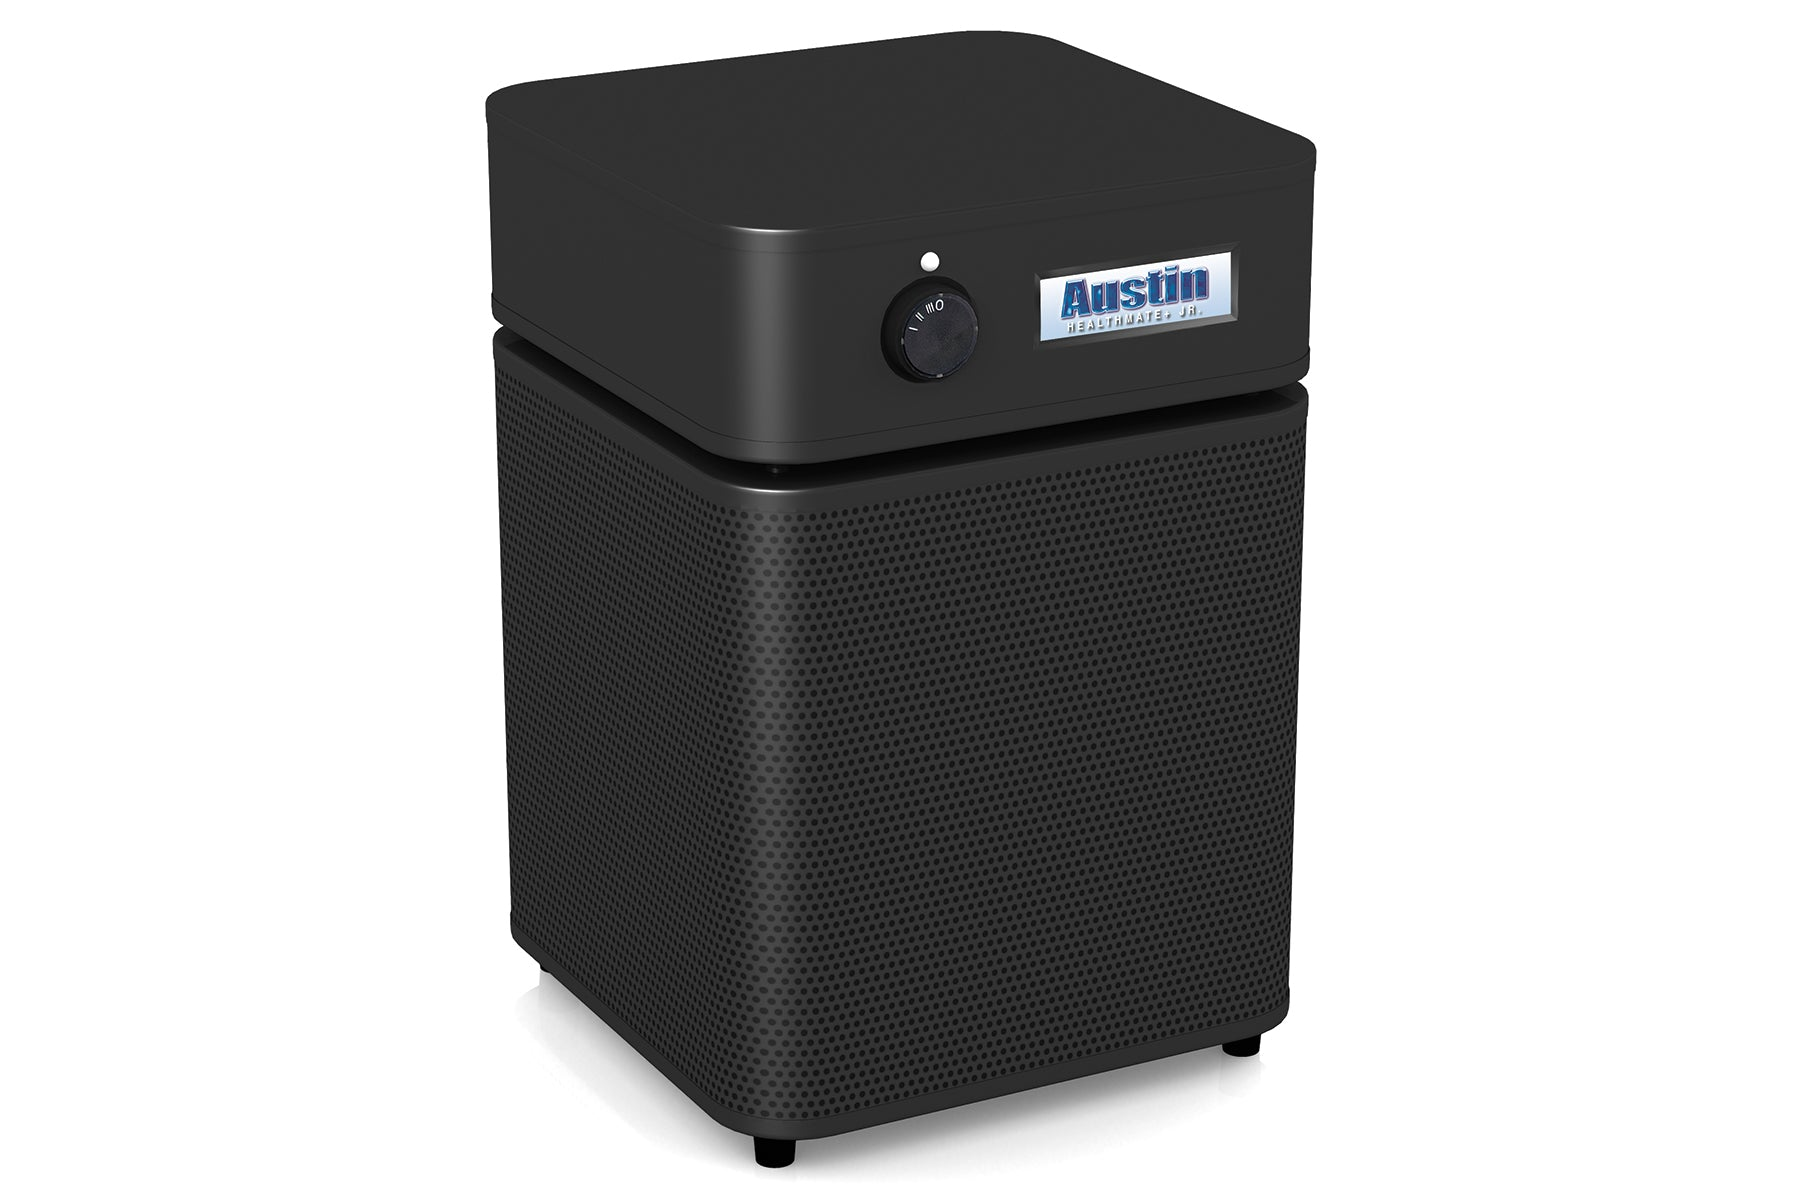 AirPurifier Austin Air HealthMate Plus Junior® A250 Air Purifier(s)